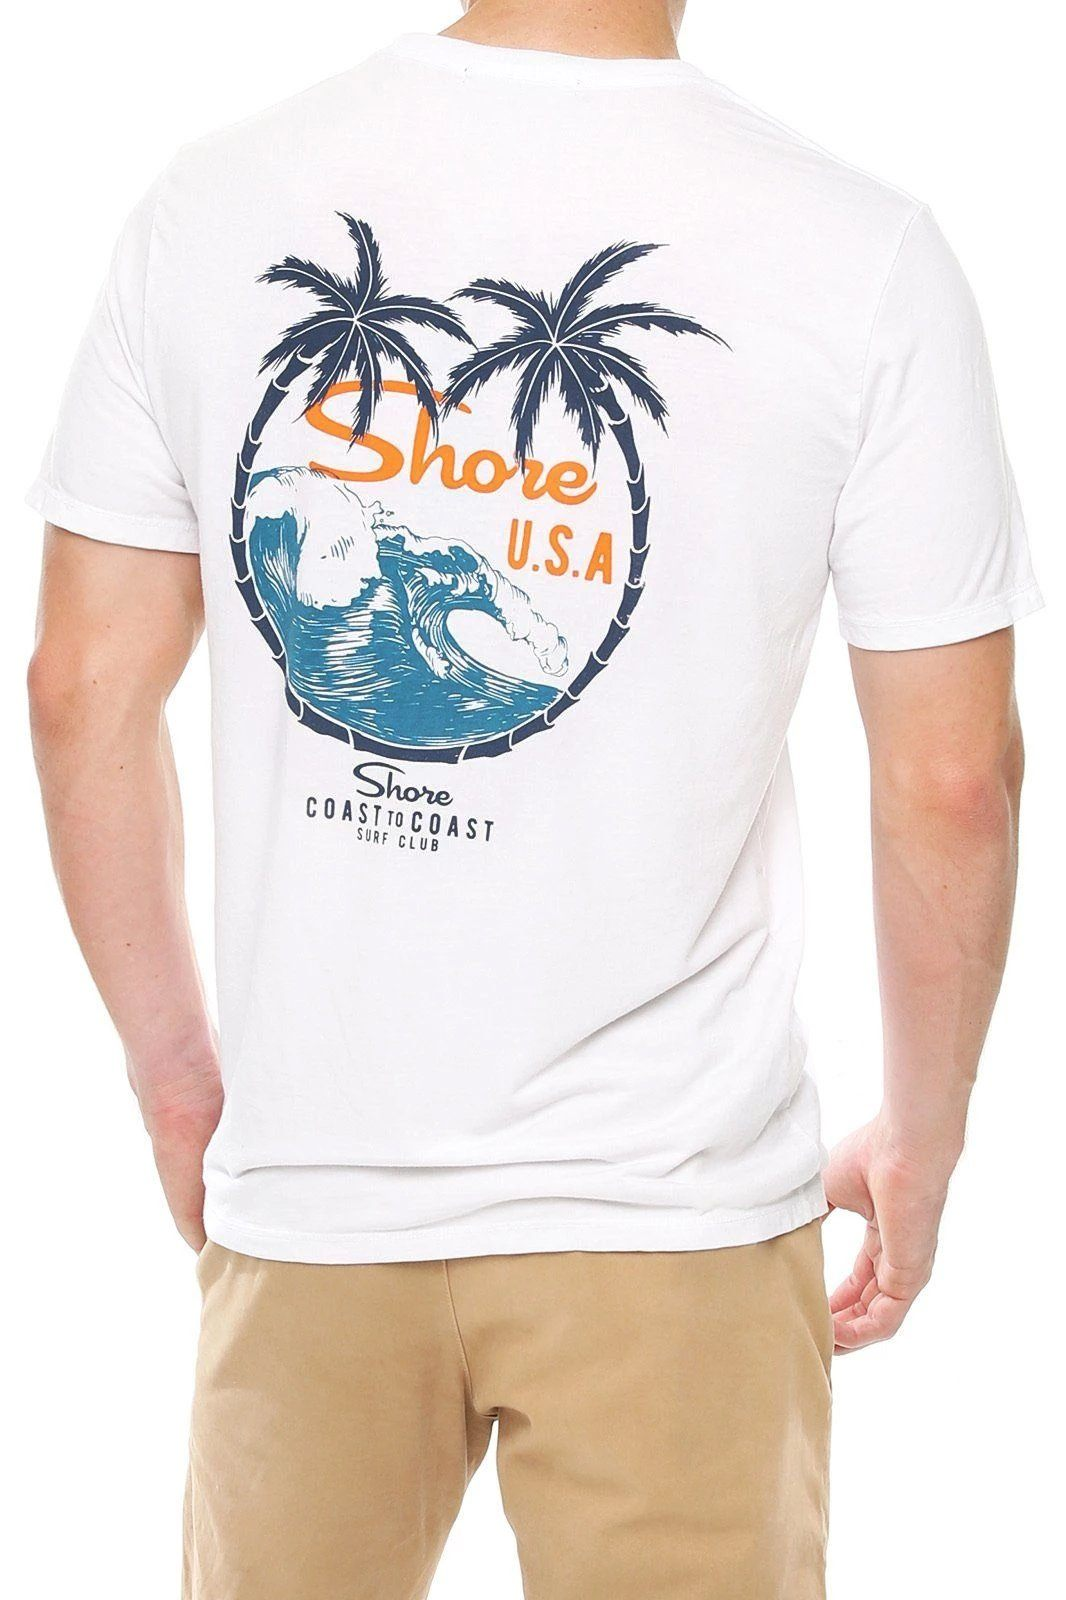 Men's Graphic Crew Tee - Shore USA - Shore